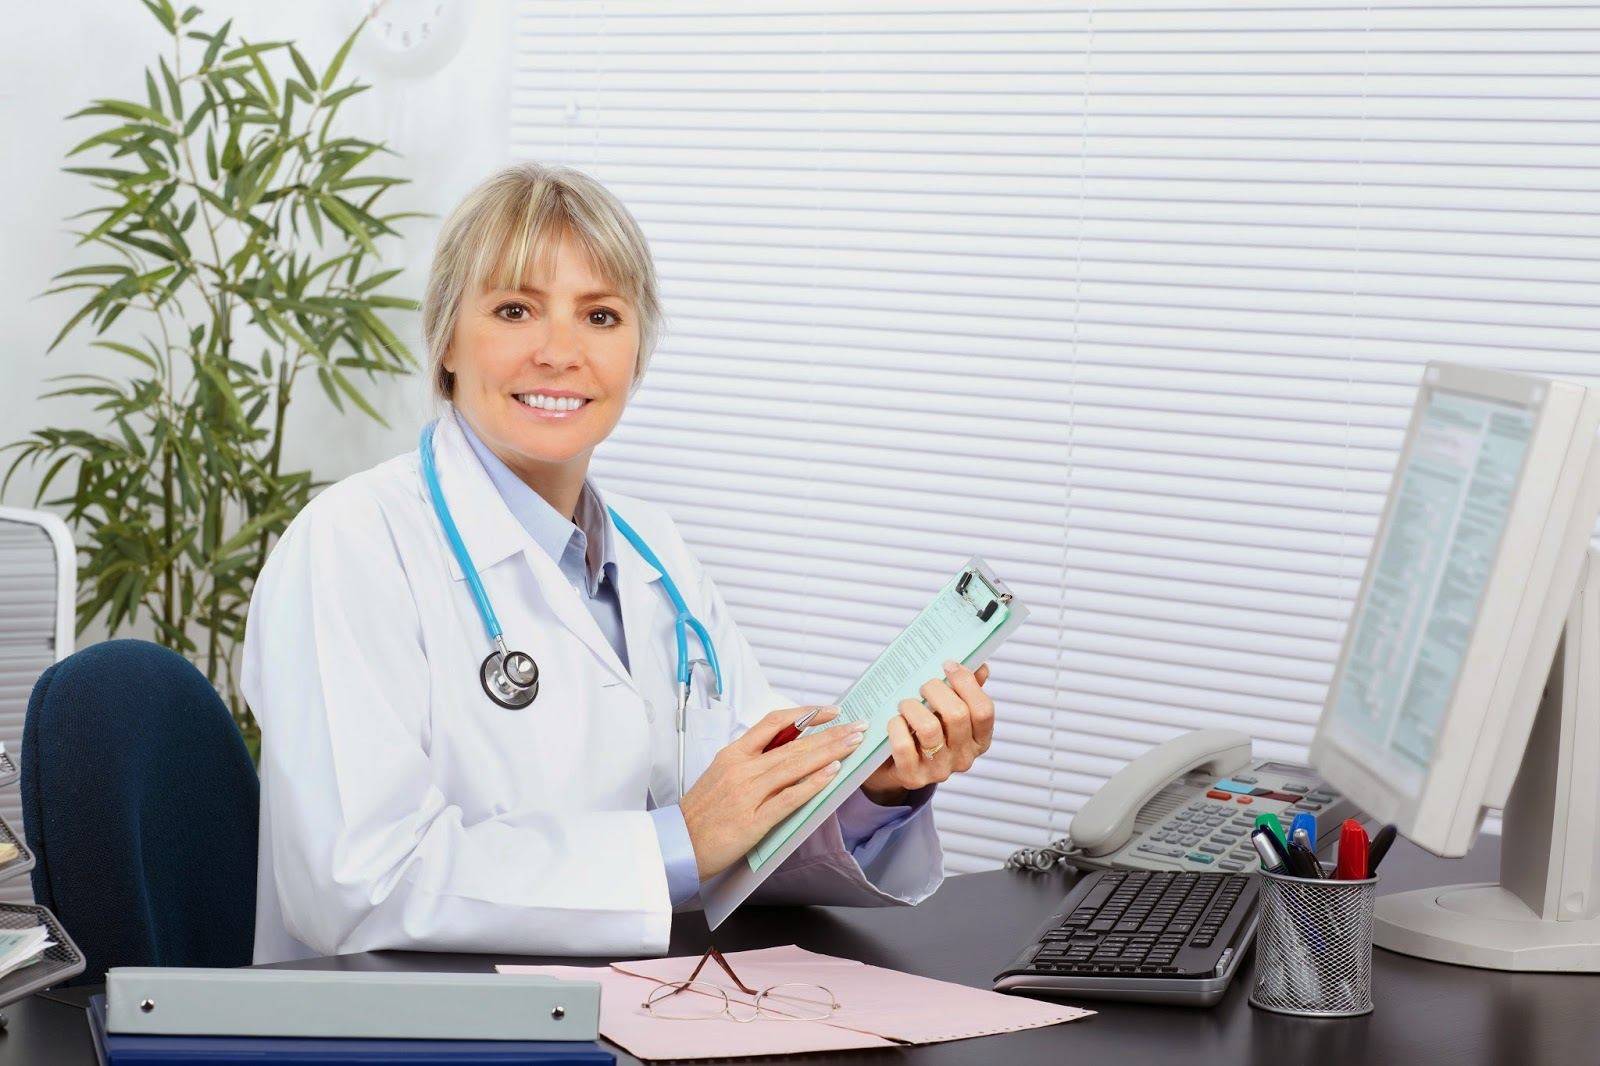 How to Select a Medical Billing Vendor How to Select a Medical Billing Vendor new picture